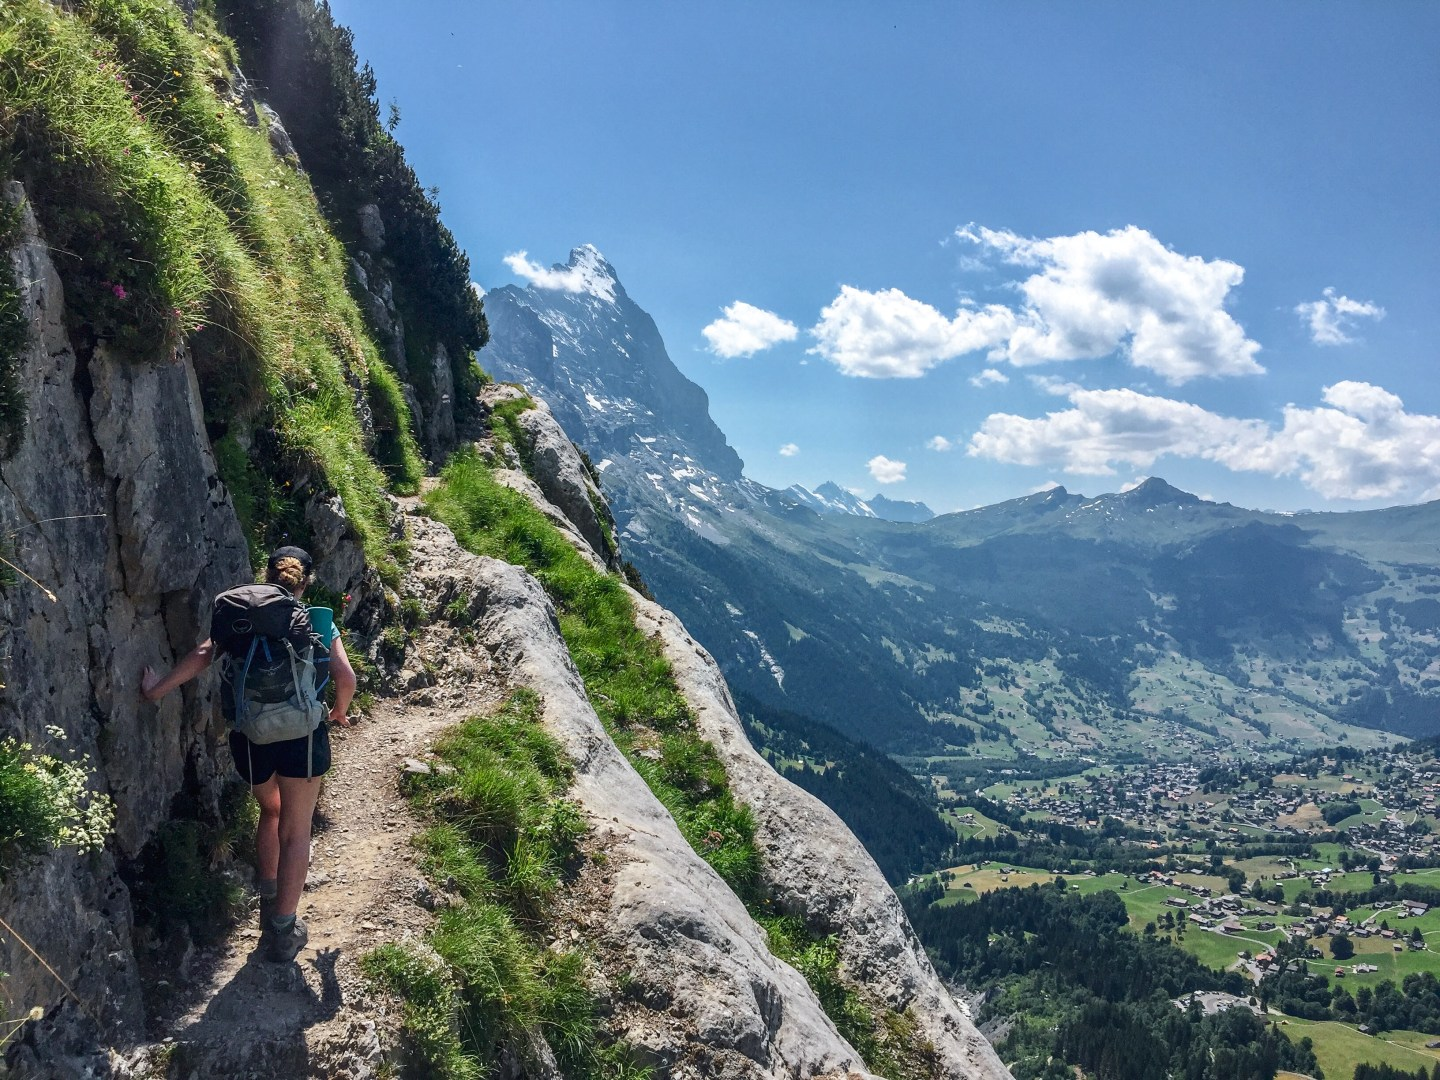 Backpacking in the Swiss Alps Hiking Itinerary: Meiringen to Gimmelwald, Lauterbrunnen along the Via Alpina Stages 10 and 11